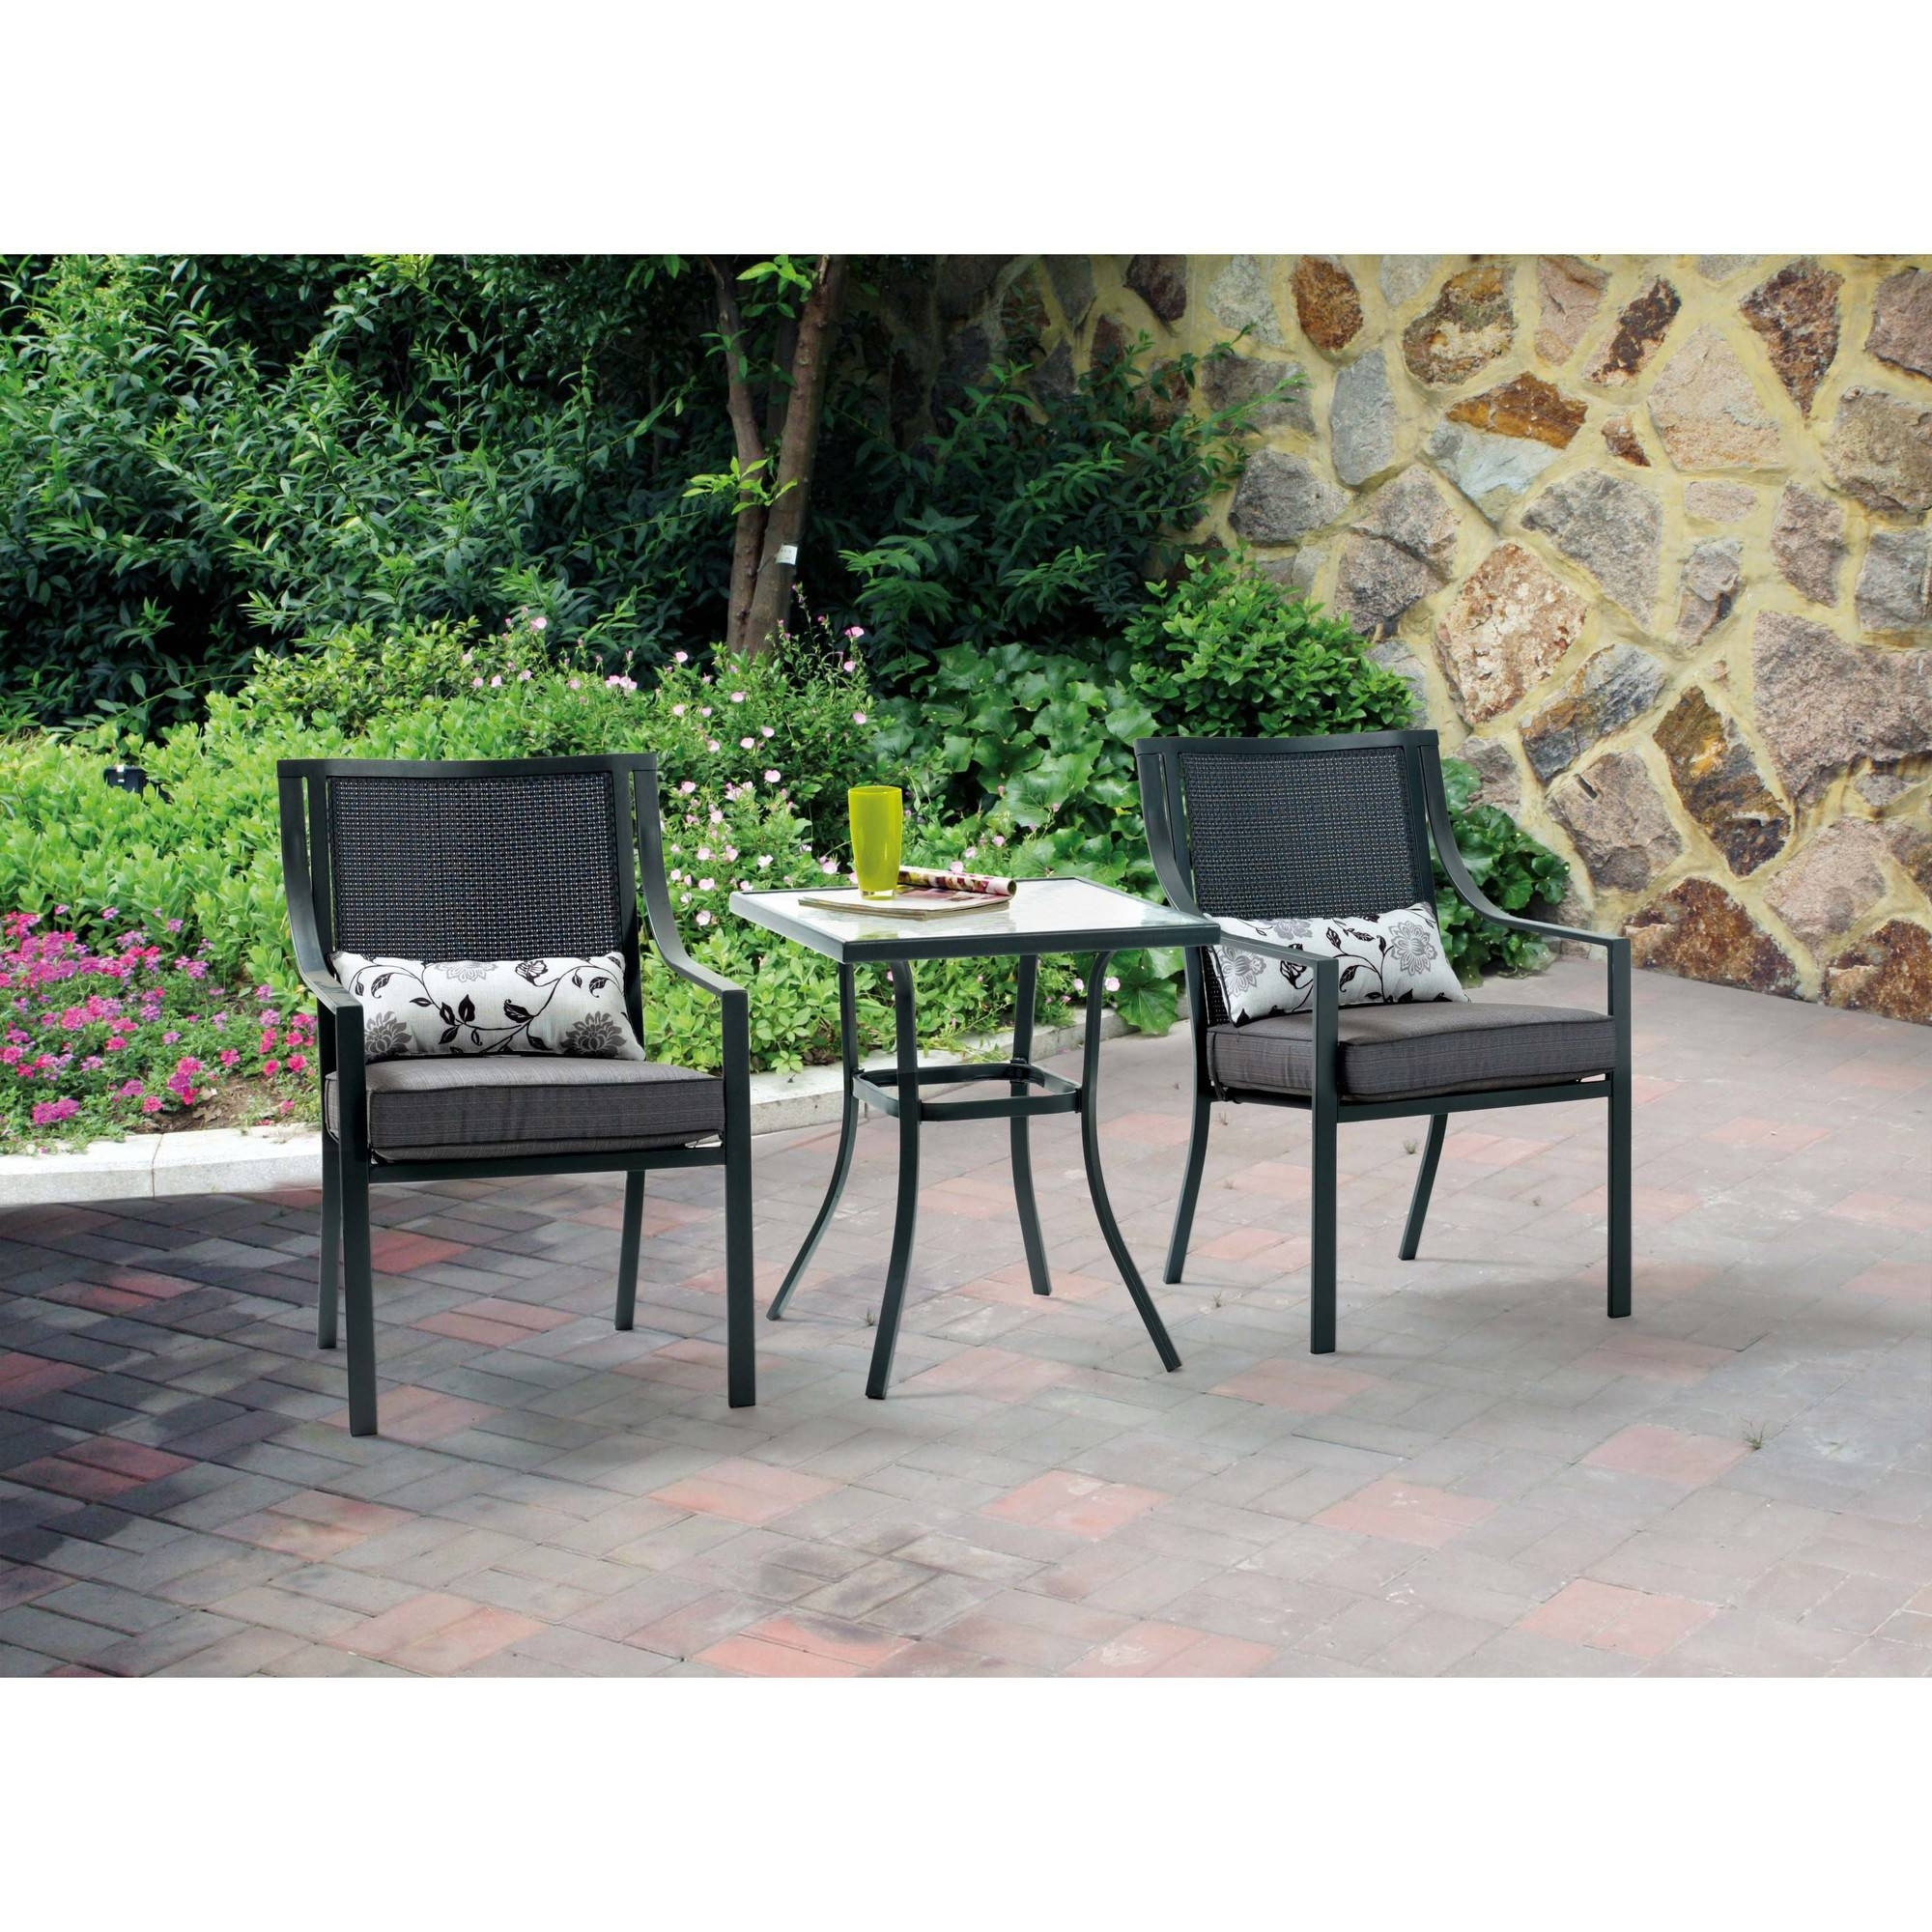 Outdoor Dining Table And Chairs Sets With Regard To Most Current Mainstays Alexandra Square 3 Piece Outdoor Bistro Set, Seats (View 22 of 25)